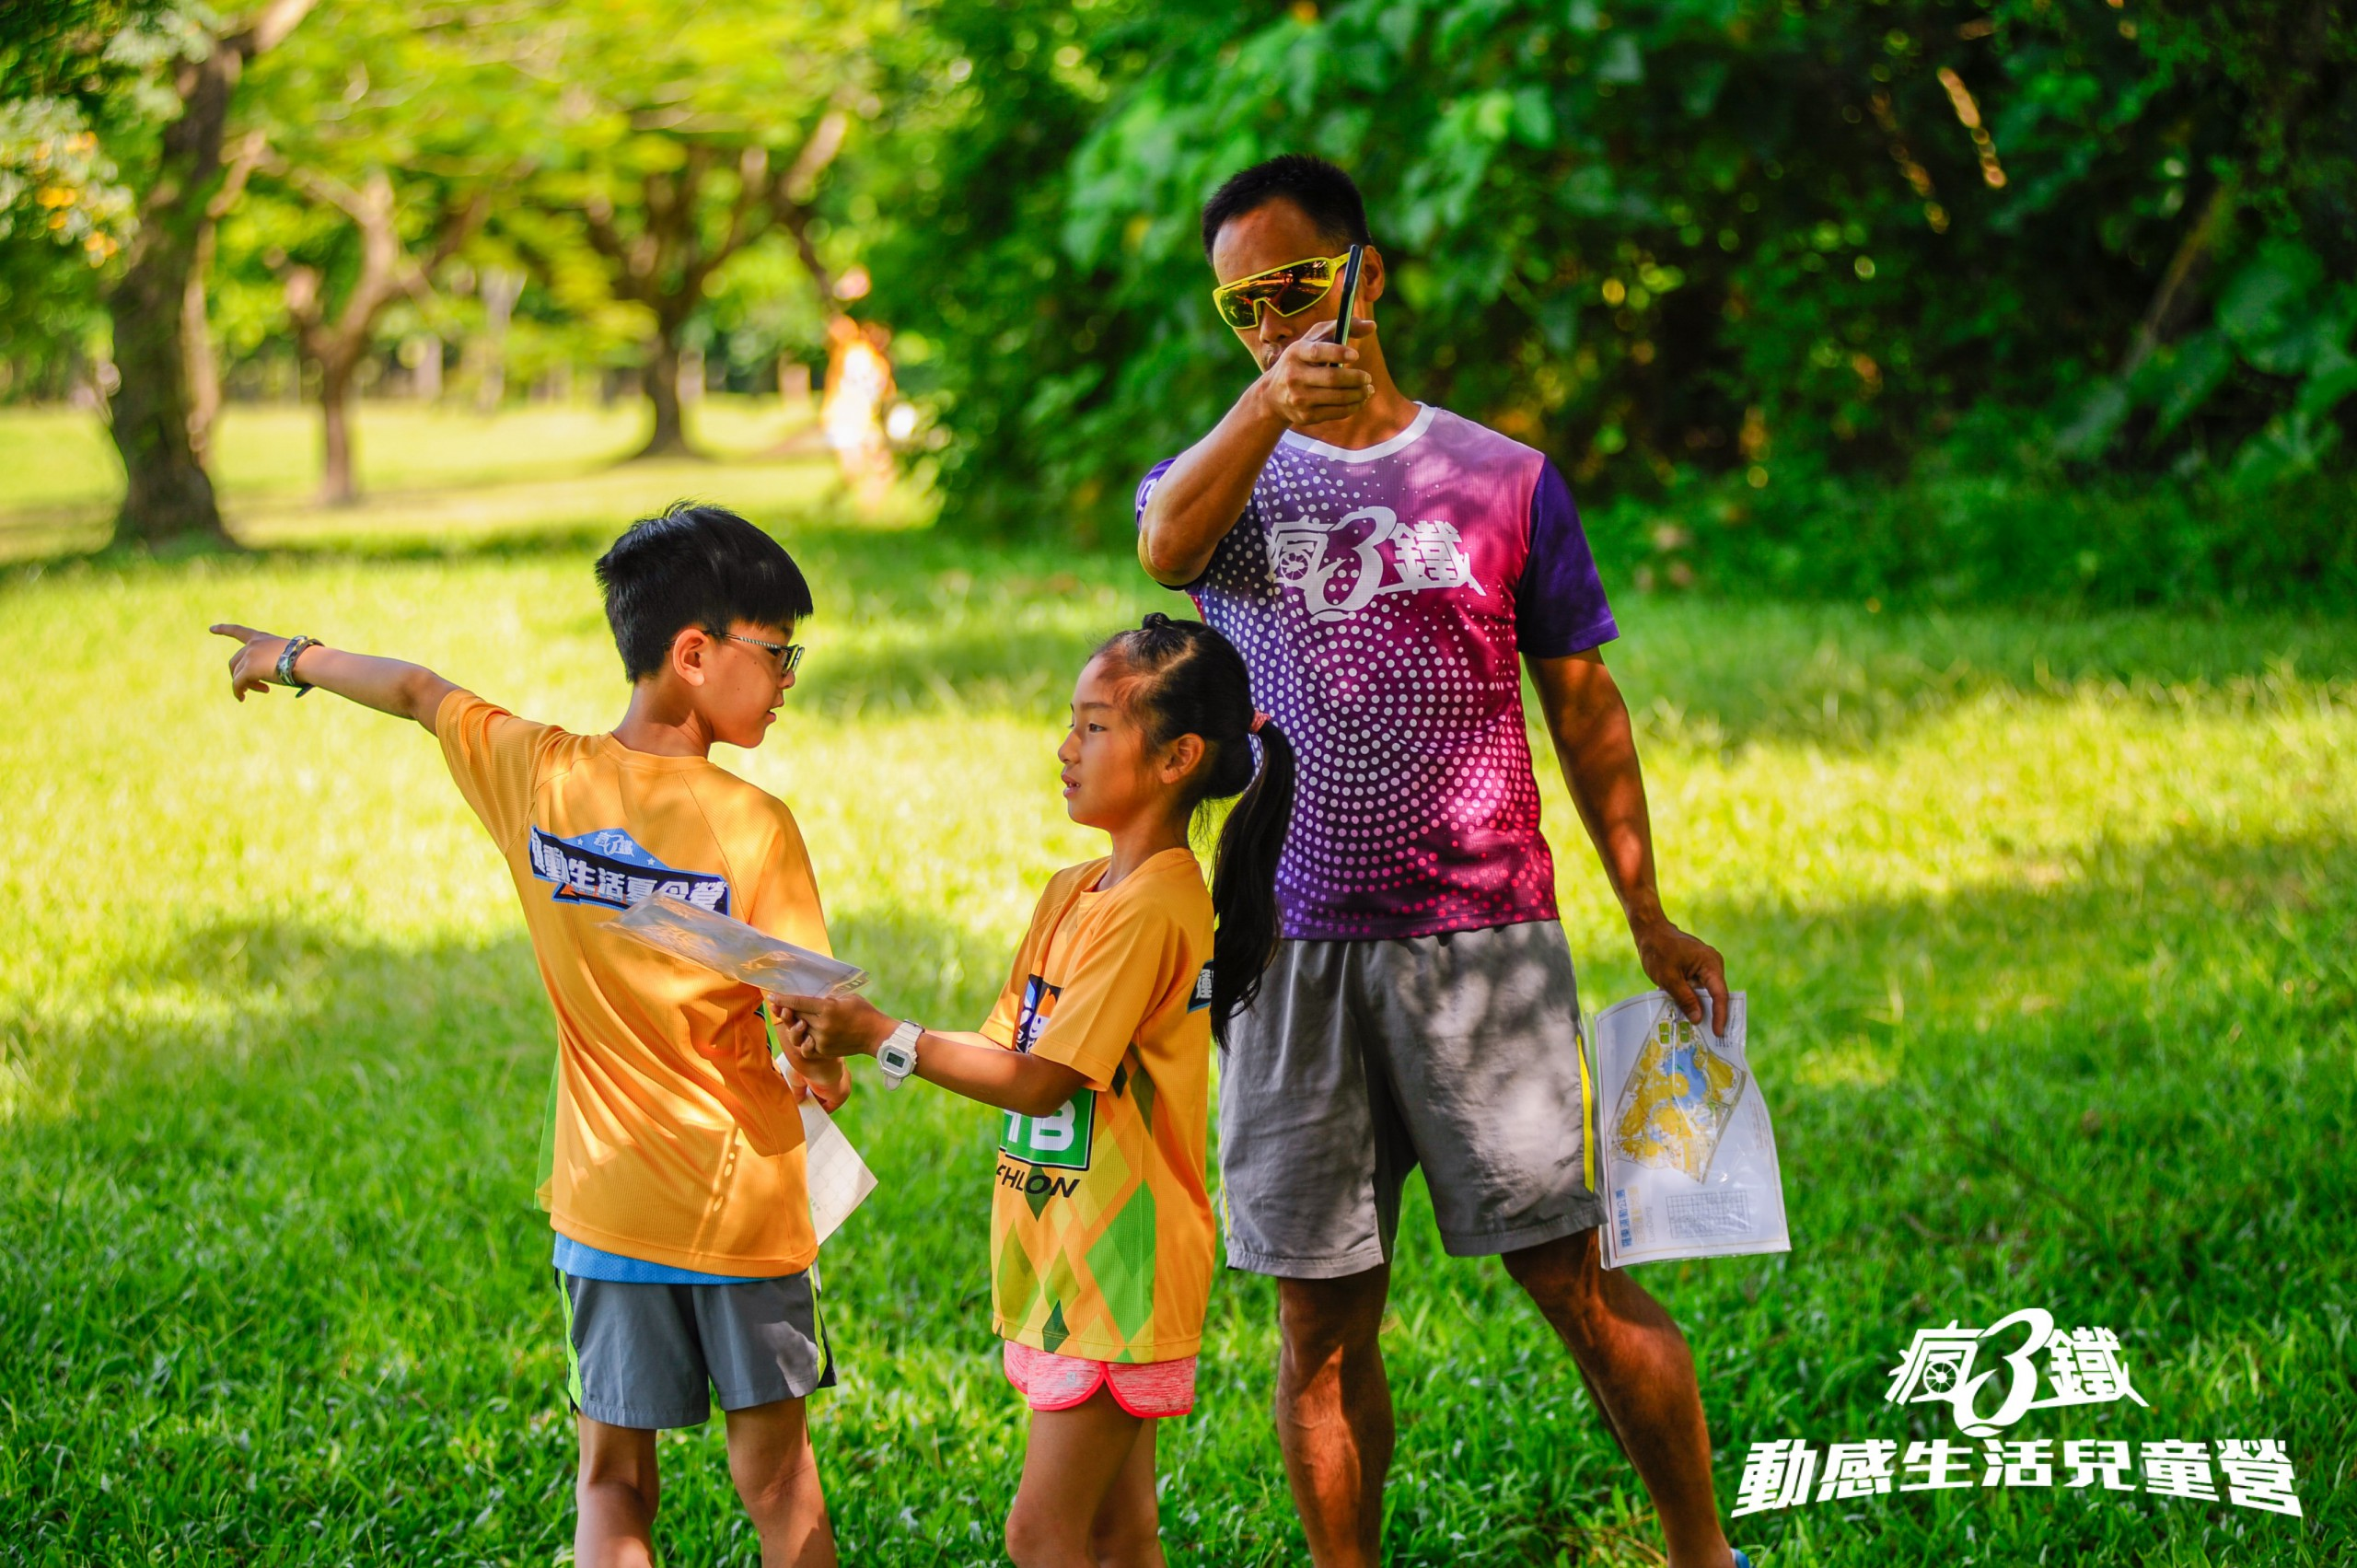 德築-DEZU-project-Fun3sport-children-summer-camp-31